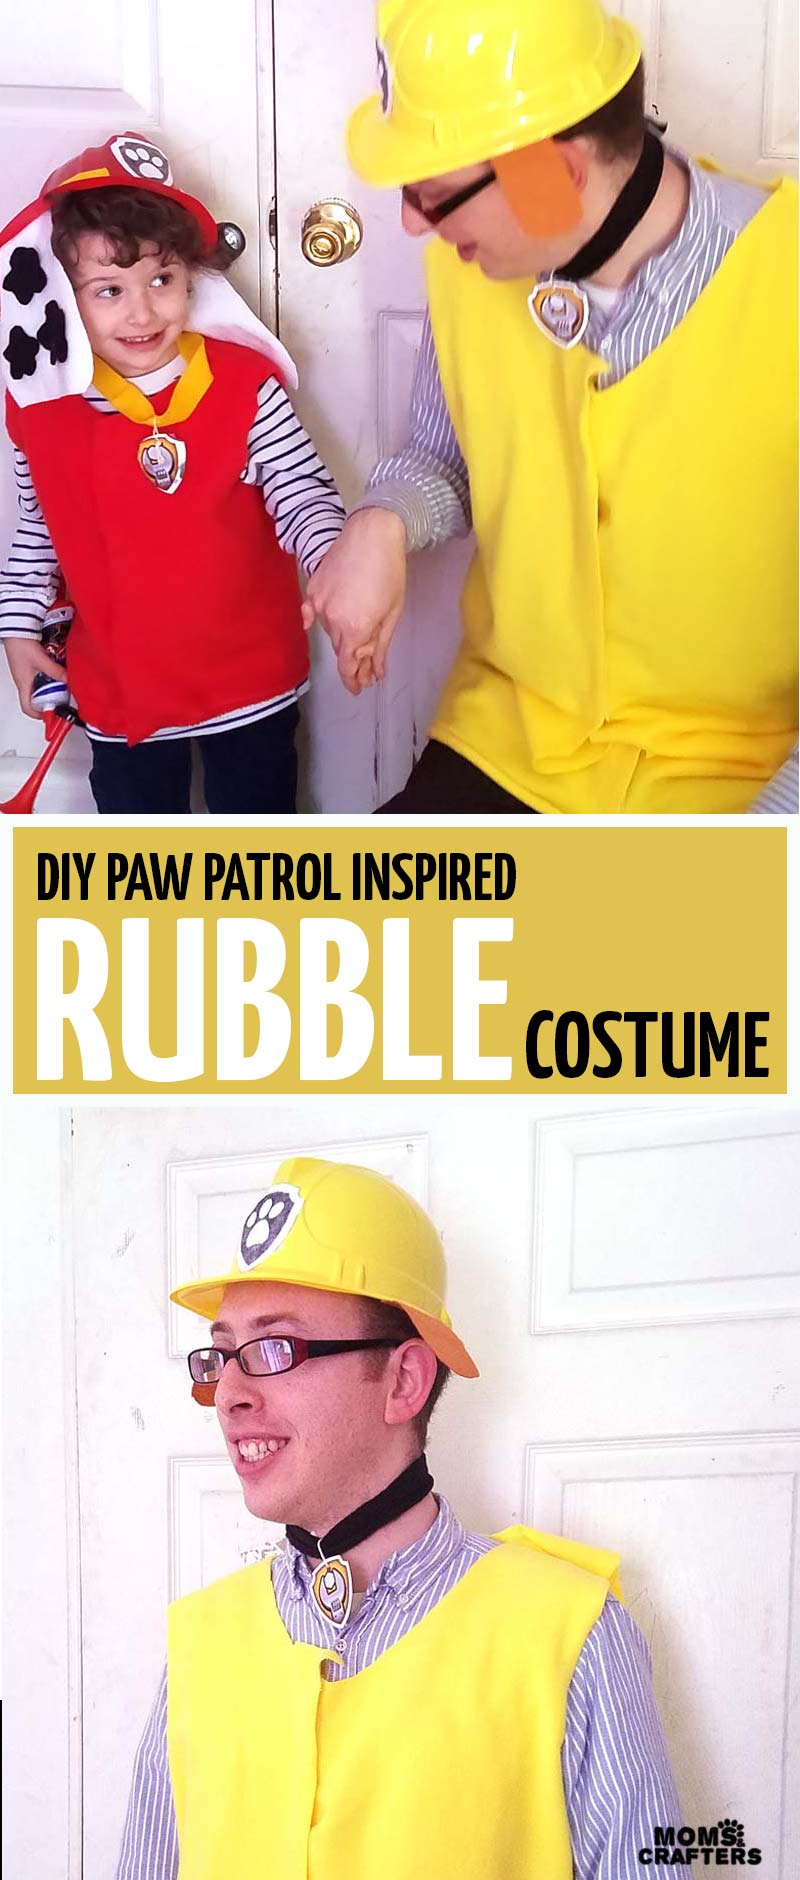 Create this adorable and easy DIY Rubble PAW Patrol costume - it's a no-sew costume inpired by Rubble from PAW Patrol! Perfect for your preschooler or toddler who is obsessed with the show, or as part of a family costume idea.